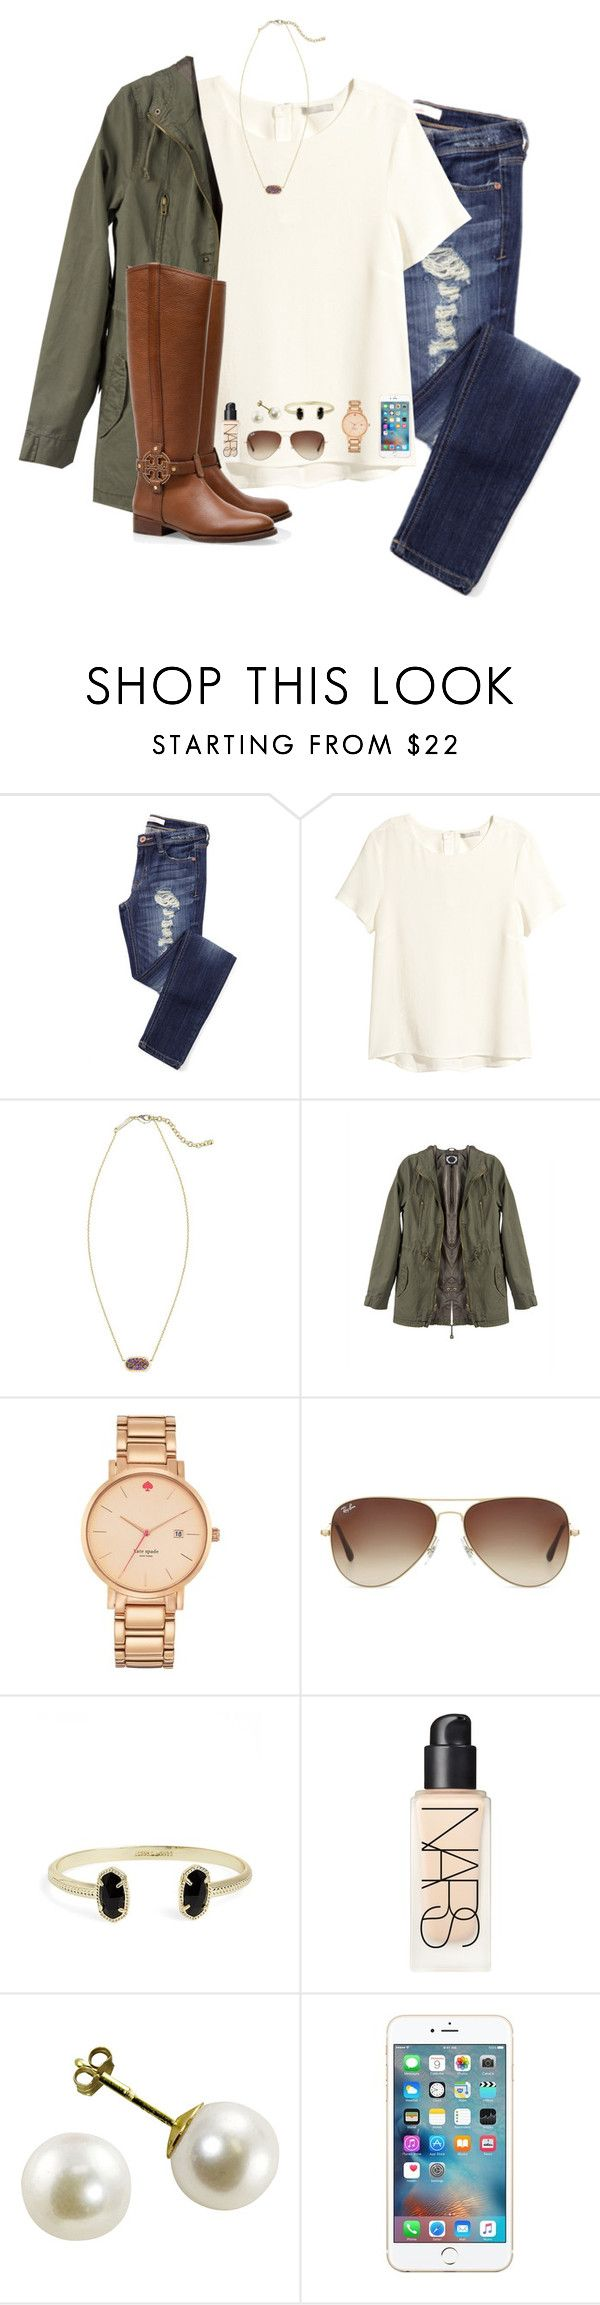 If plan A doesnt work remember that there are 26 letters in the alphabet by graciegerhart7 ❤ liked on Polyvore featuring HM, Kendra Scott, Kate Spade, Ray-Ban, NARS Cosmetics, Tory Burch, womens clothing, women, female and woman